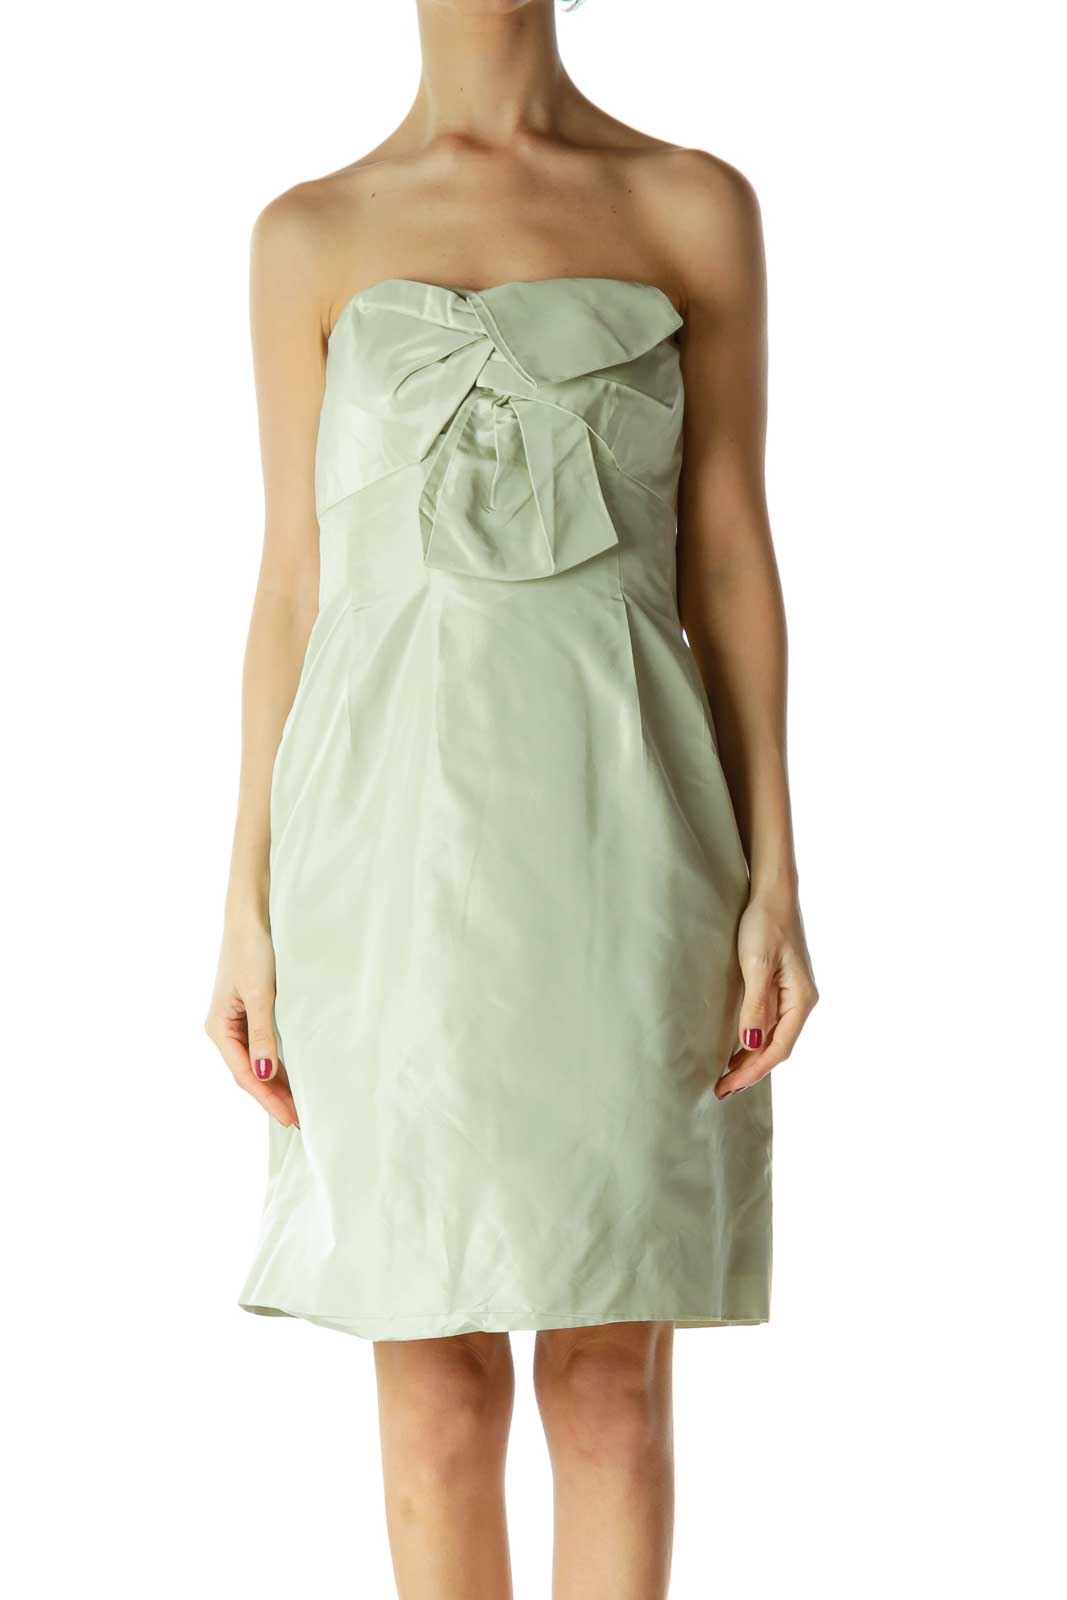 Green Shiny Cocktail Dress with Bow